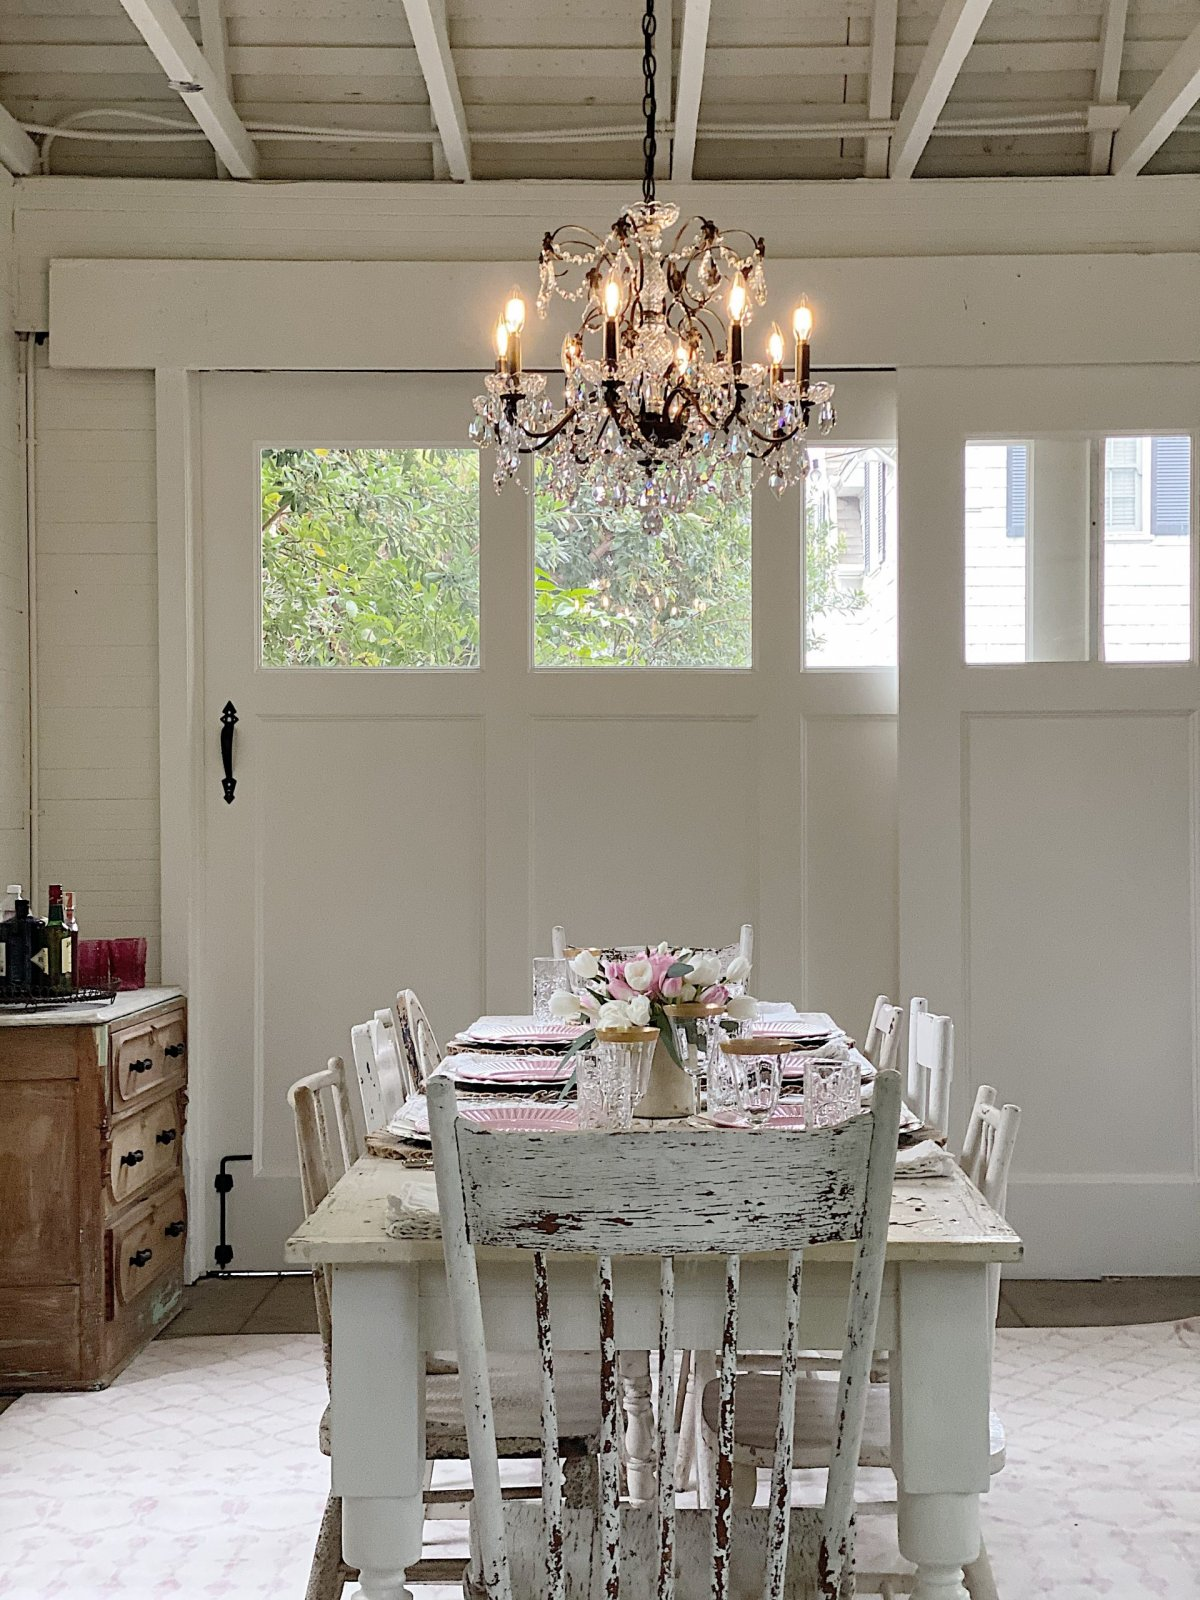 The Carriage House Reveal with Lamps Plus Chandelier